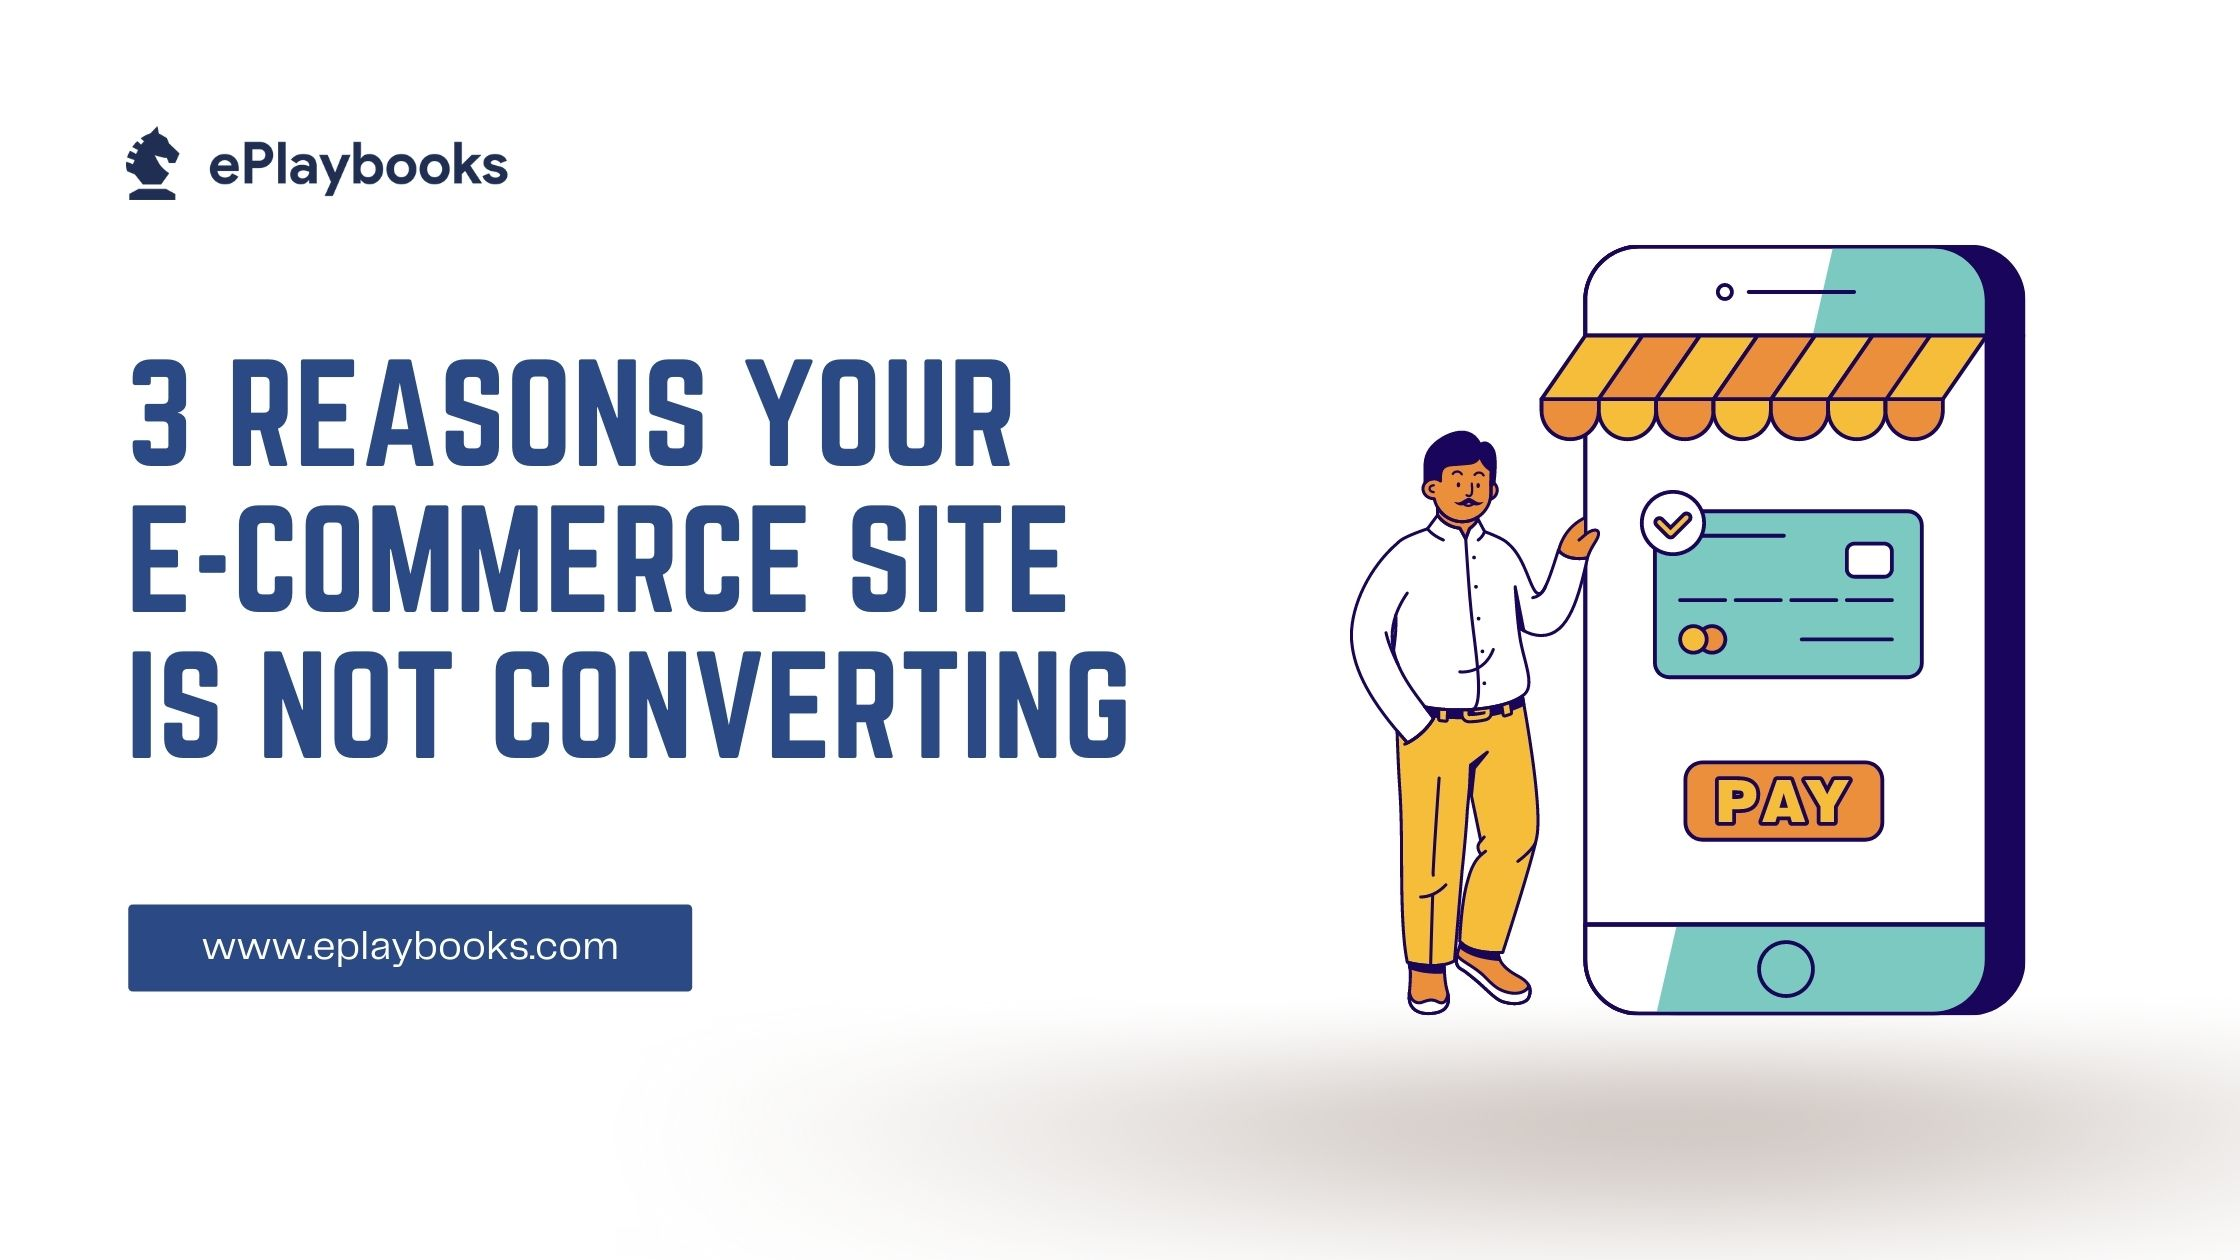 3 Reasons Your E-commerce Site is Not Converting